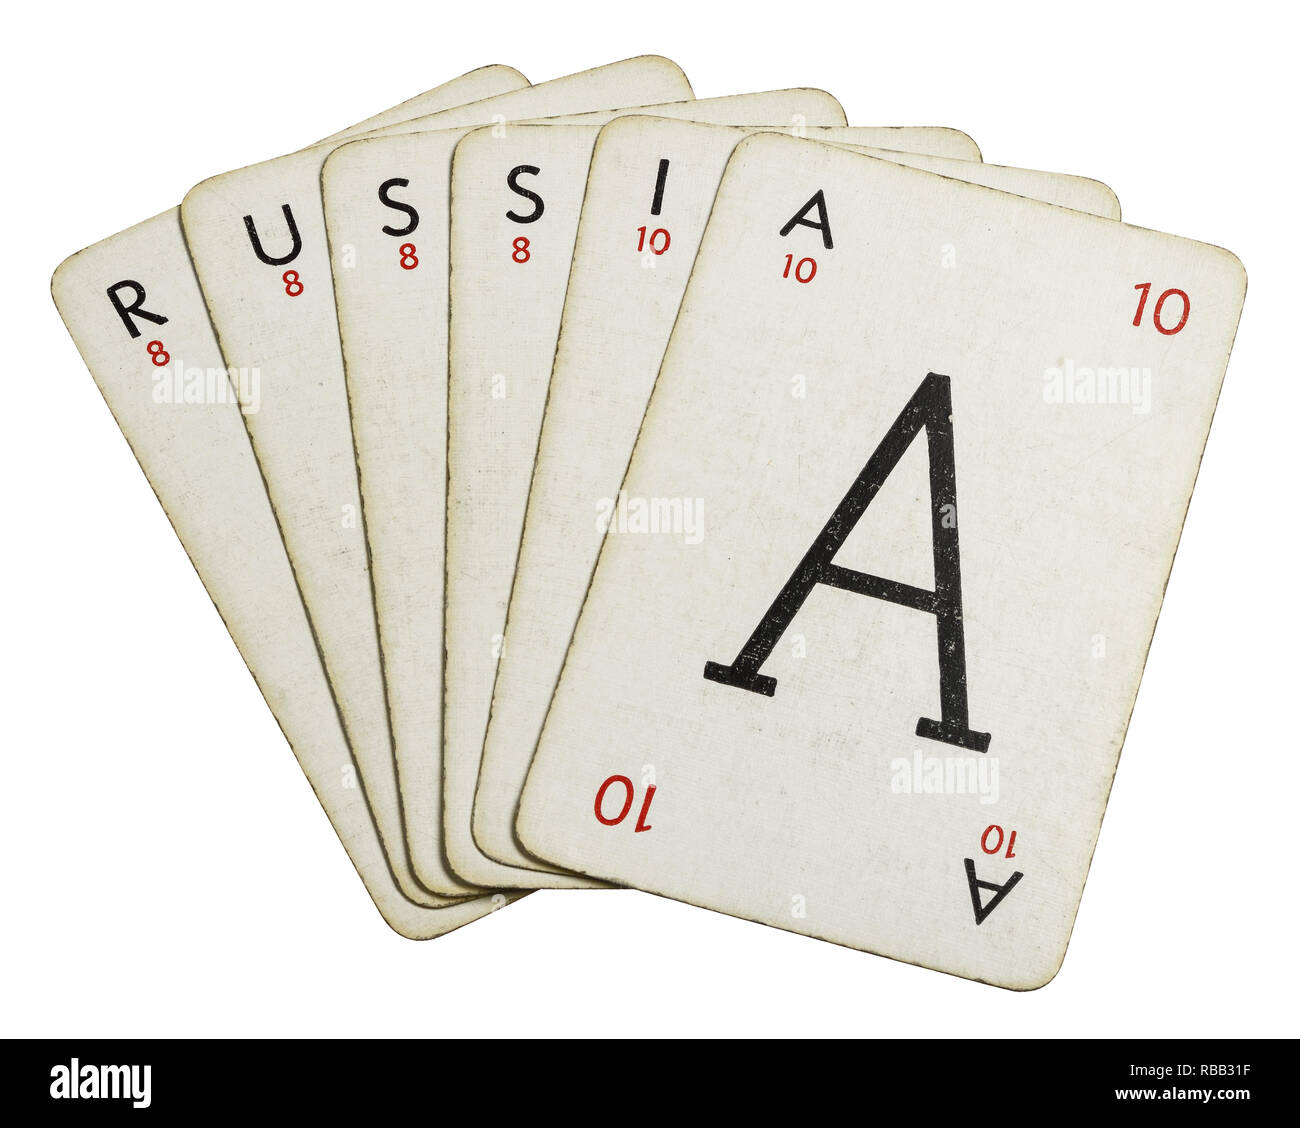 Lexicon playing cards spelling out the word Russia - Stock Image